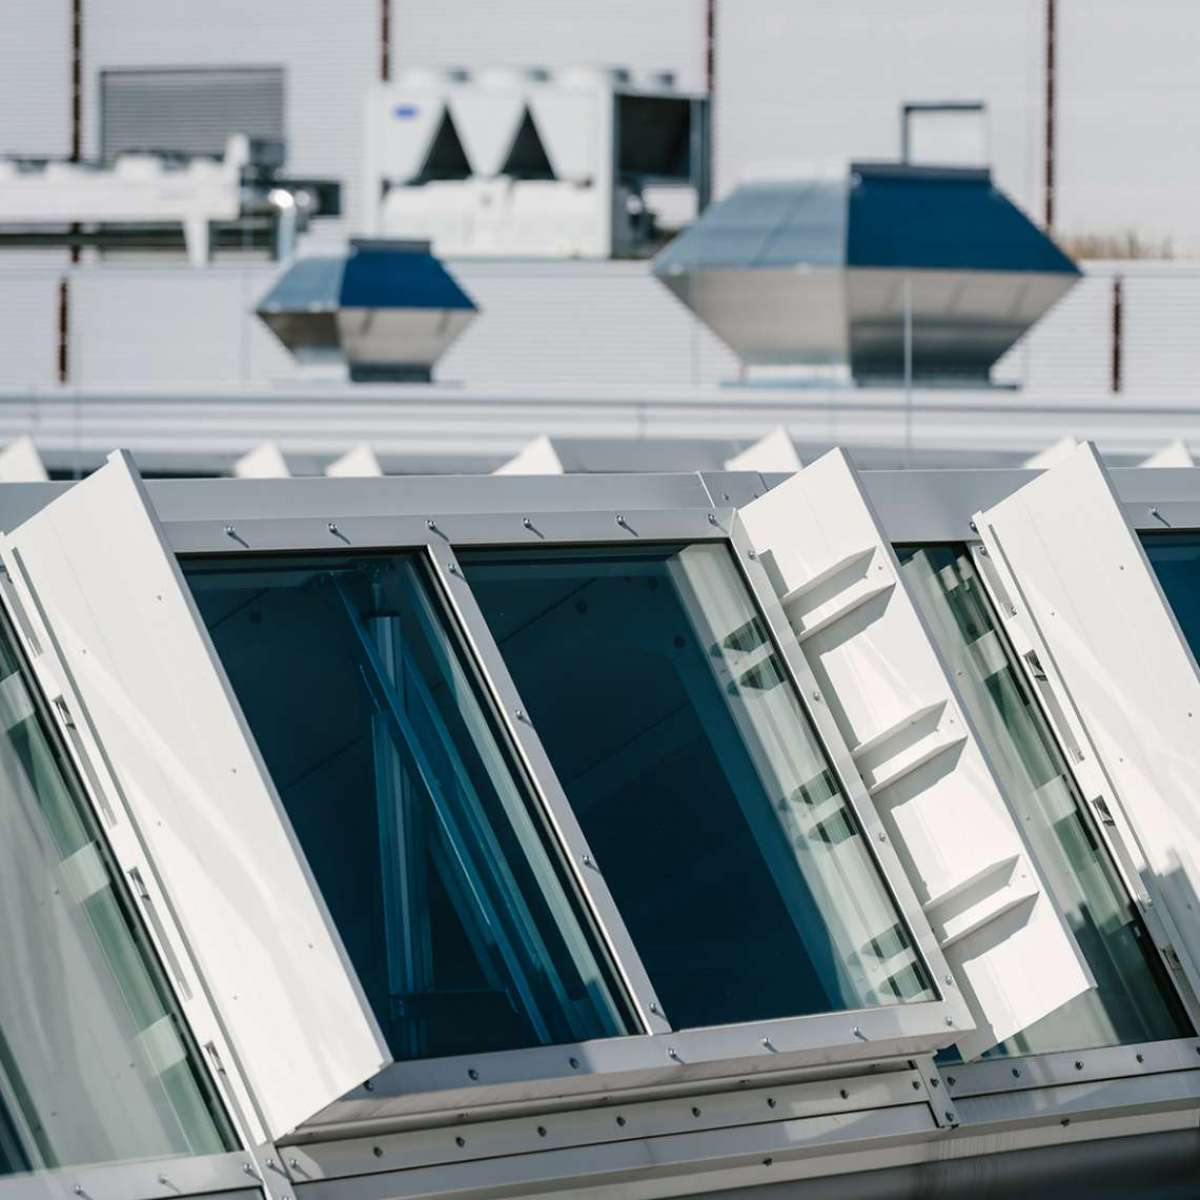 Endress+Hauser GmbH + Co. KG | Maulburg • Shedline glas rooflight, 6 units - each 14m x 2m, 24 NSHEV flaps